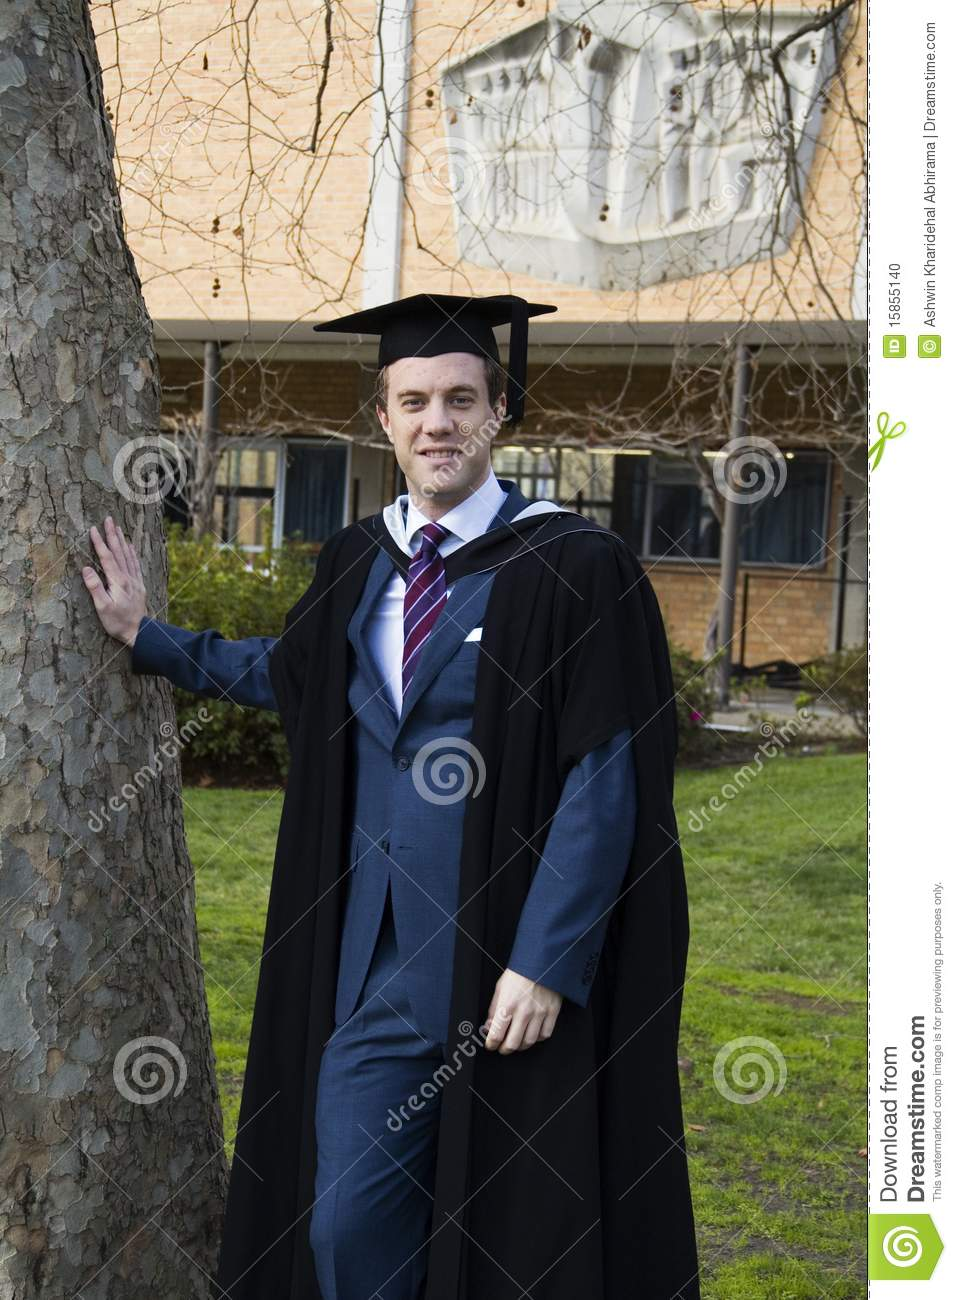 A Young Man In A Graduation Gown Stock Photo Image Of Board